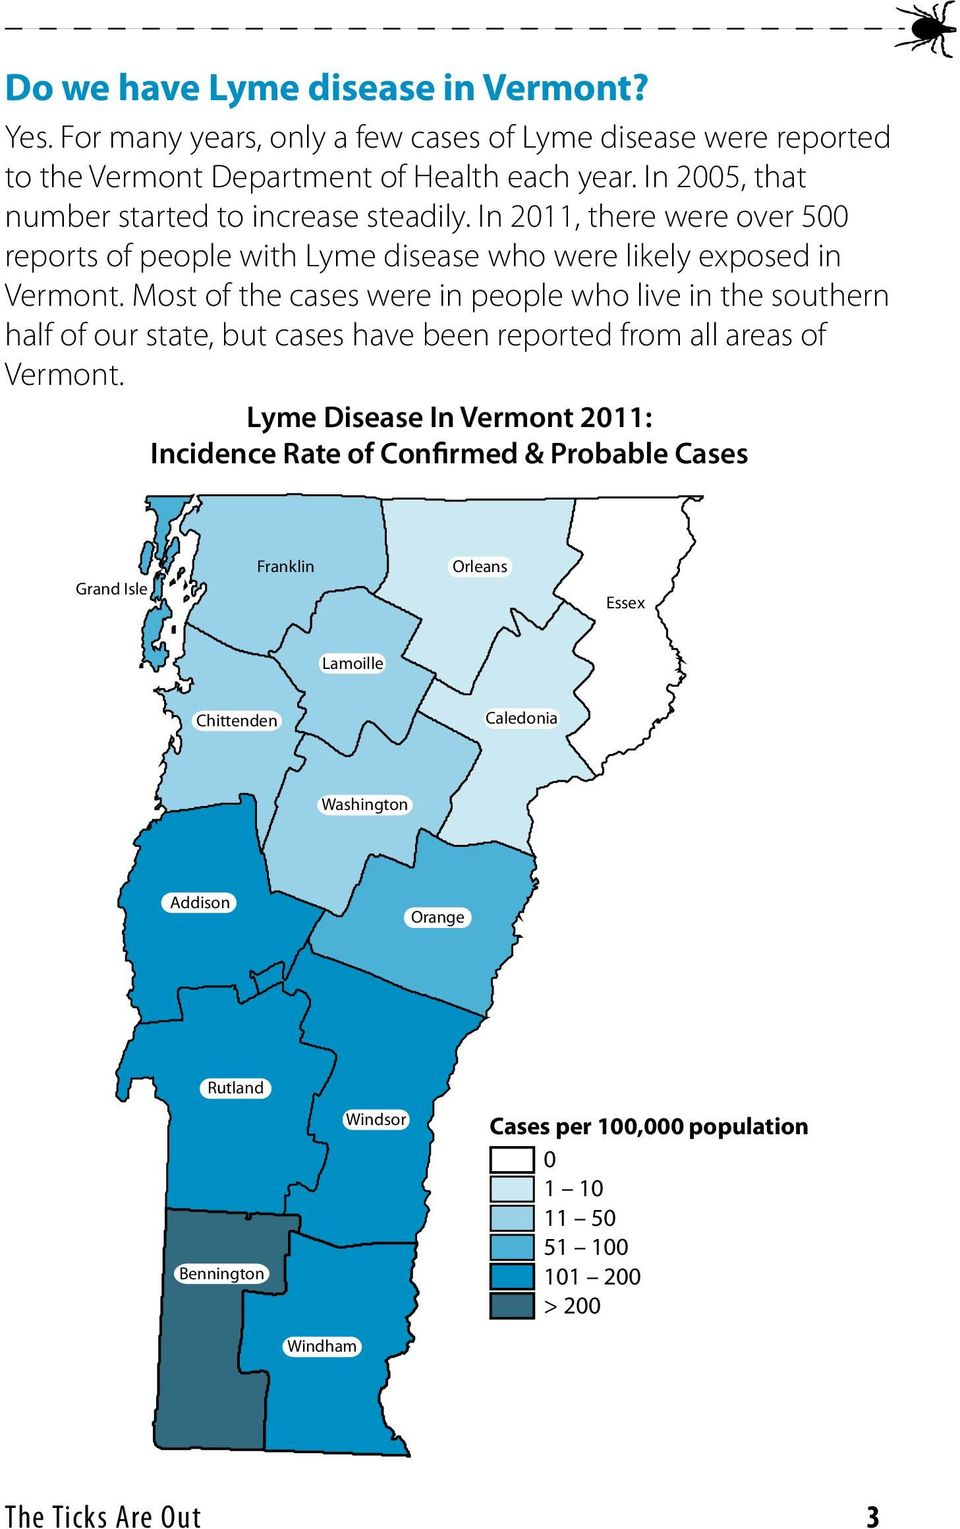 Most of the cases were in people who live in the southern half of our state, but cases have been reported from all areas of Vermont.